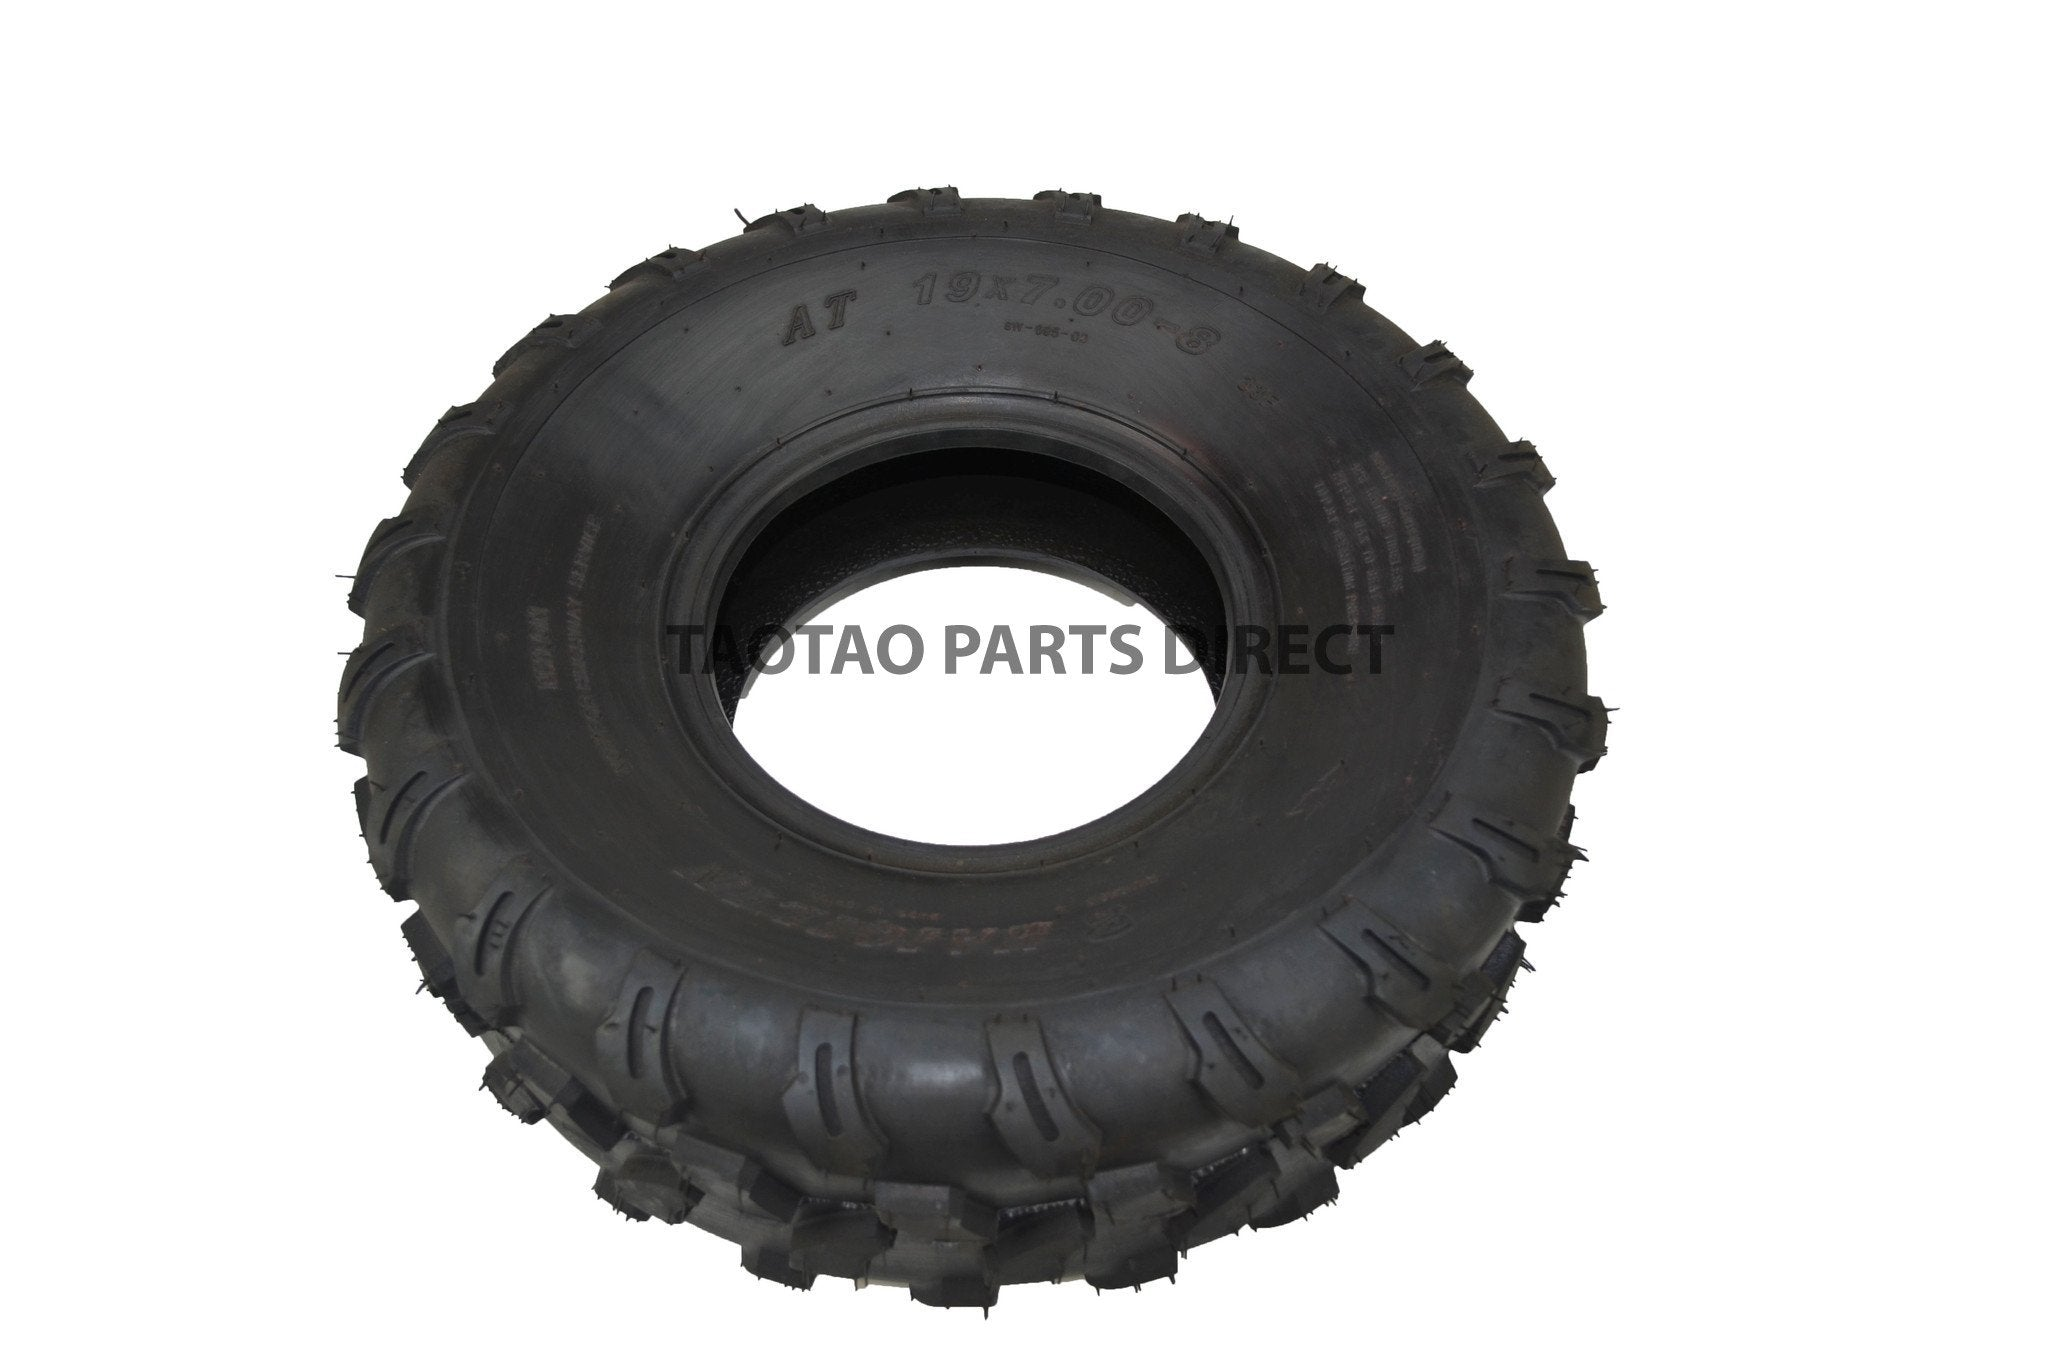 19x7-8 Tire - TaoTao Parts Direct